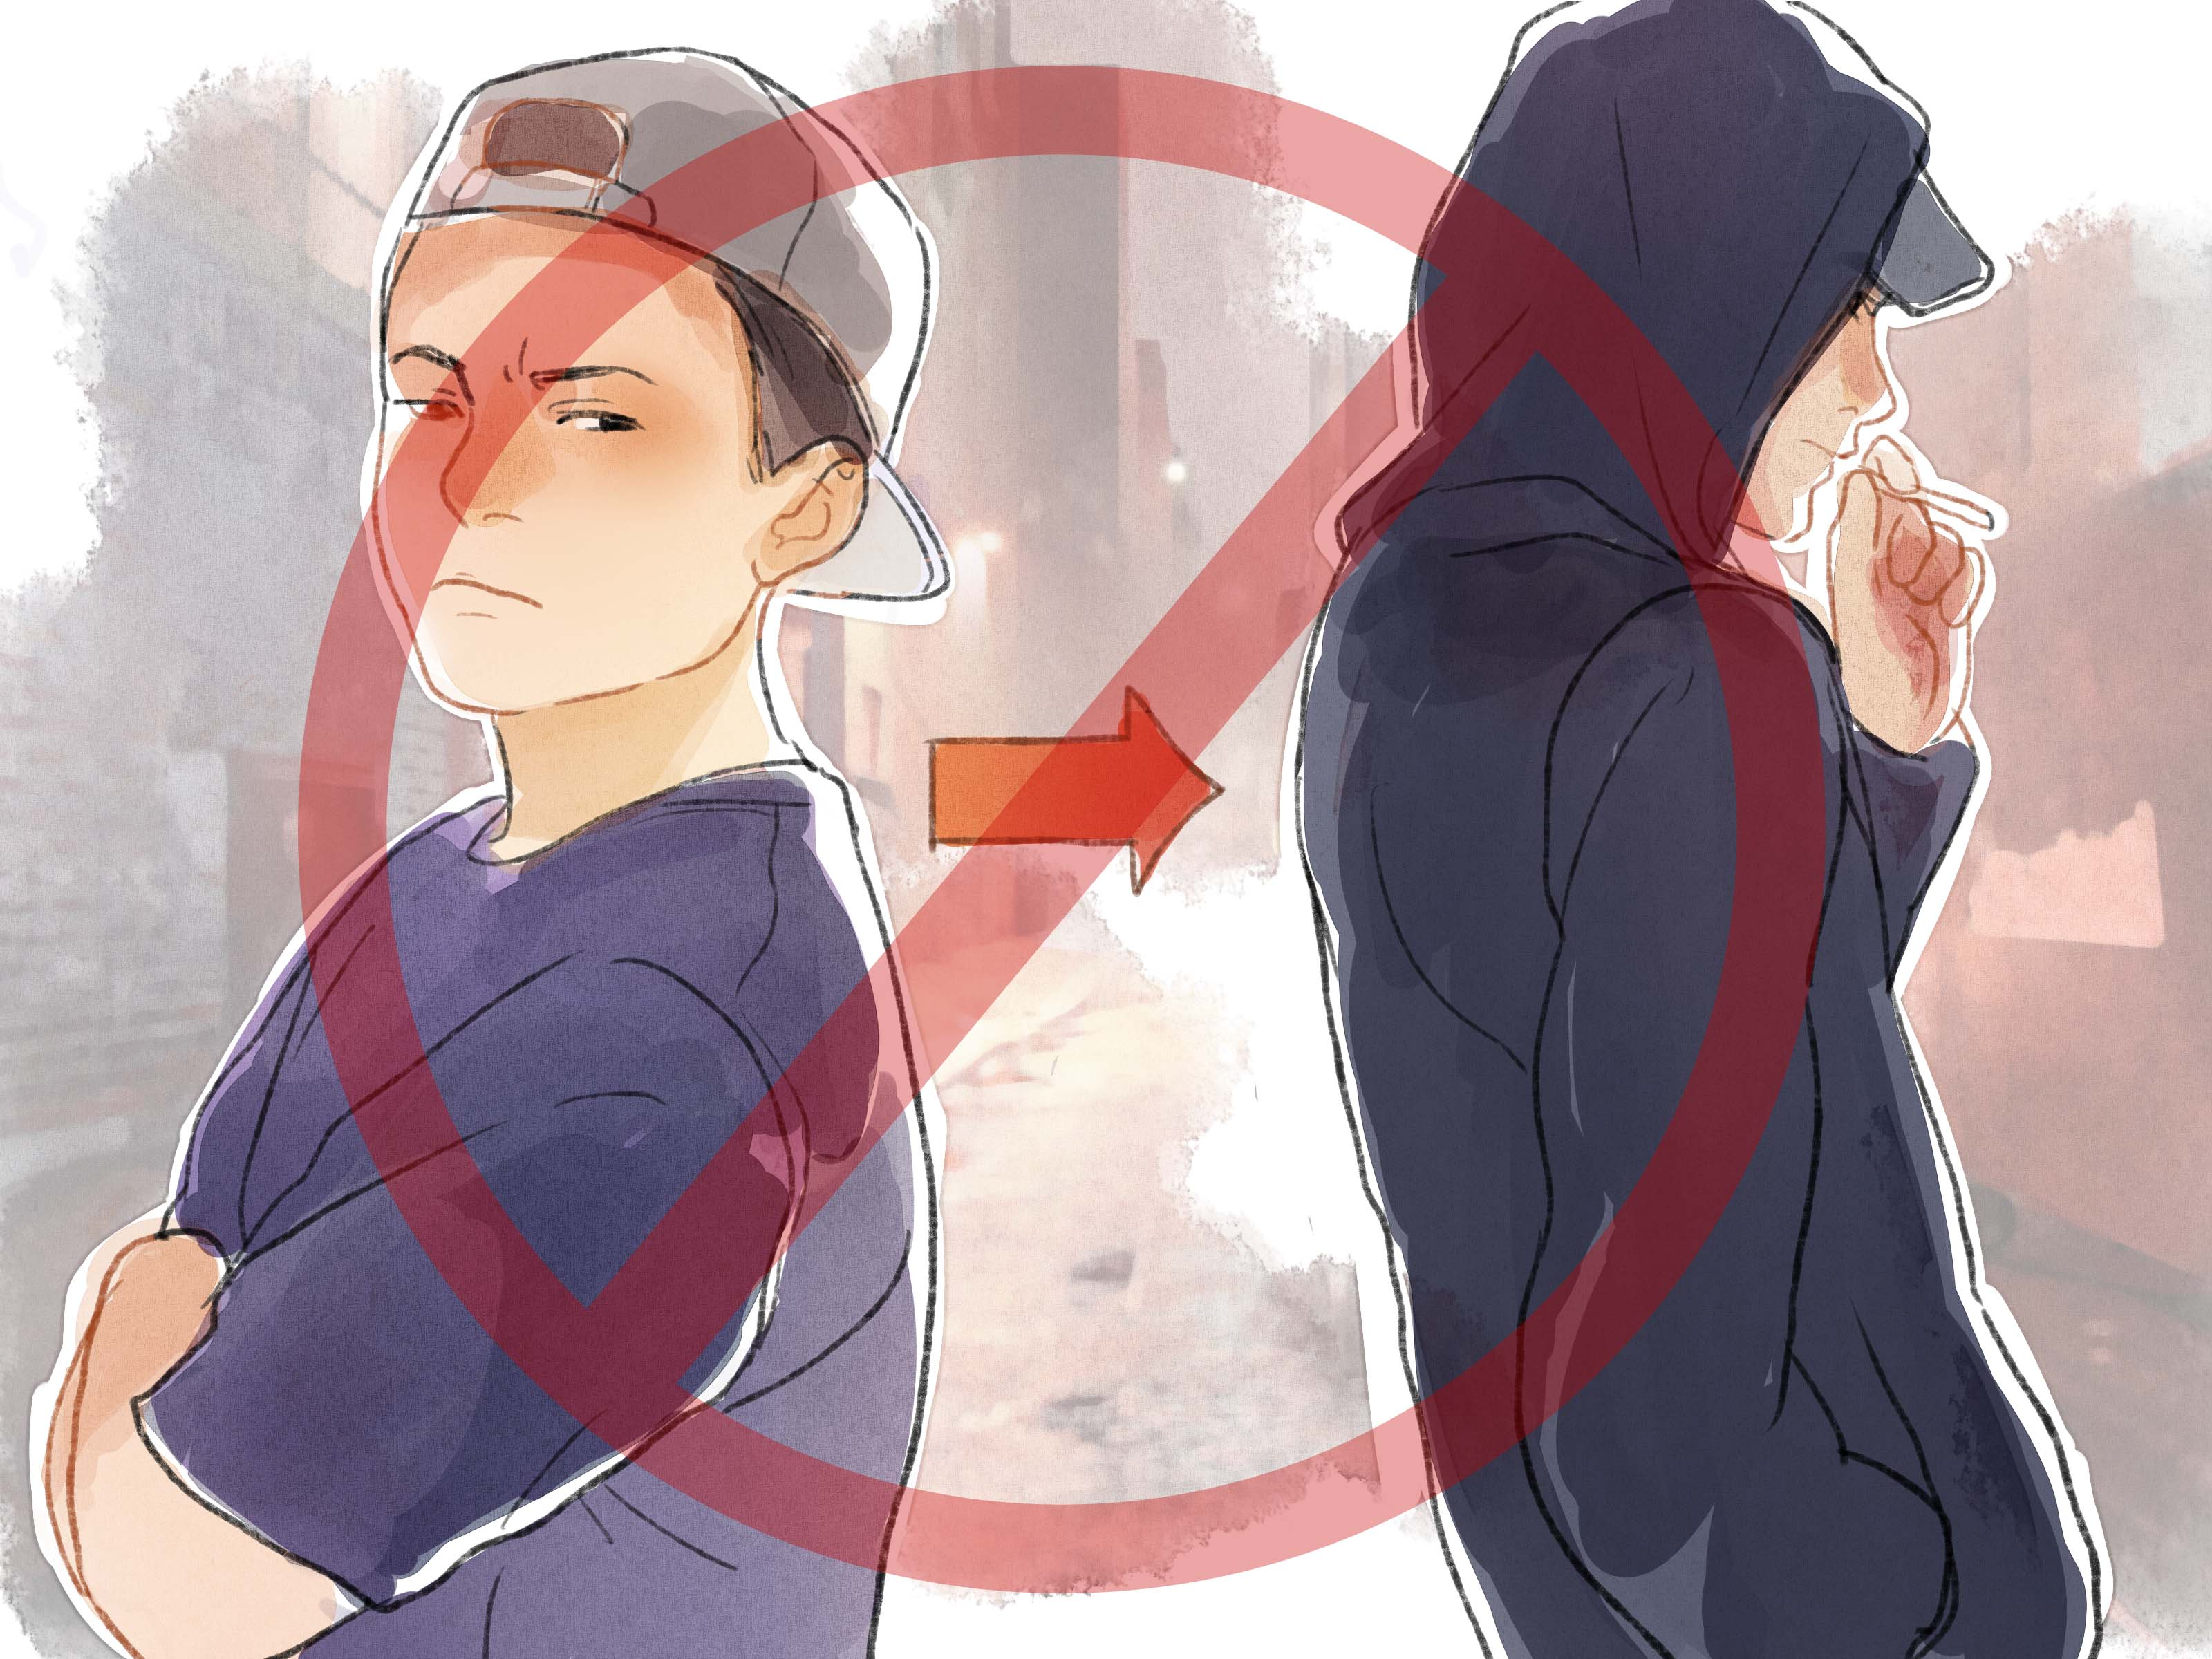 How To Recognize Someone With Antisocial Personality Disorder